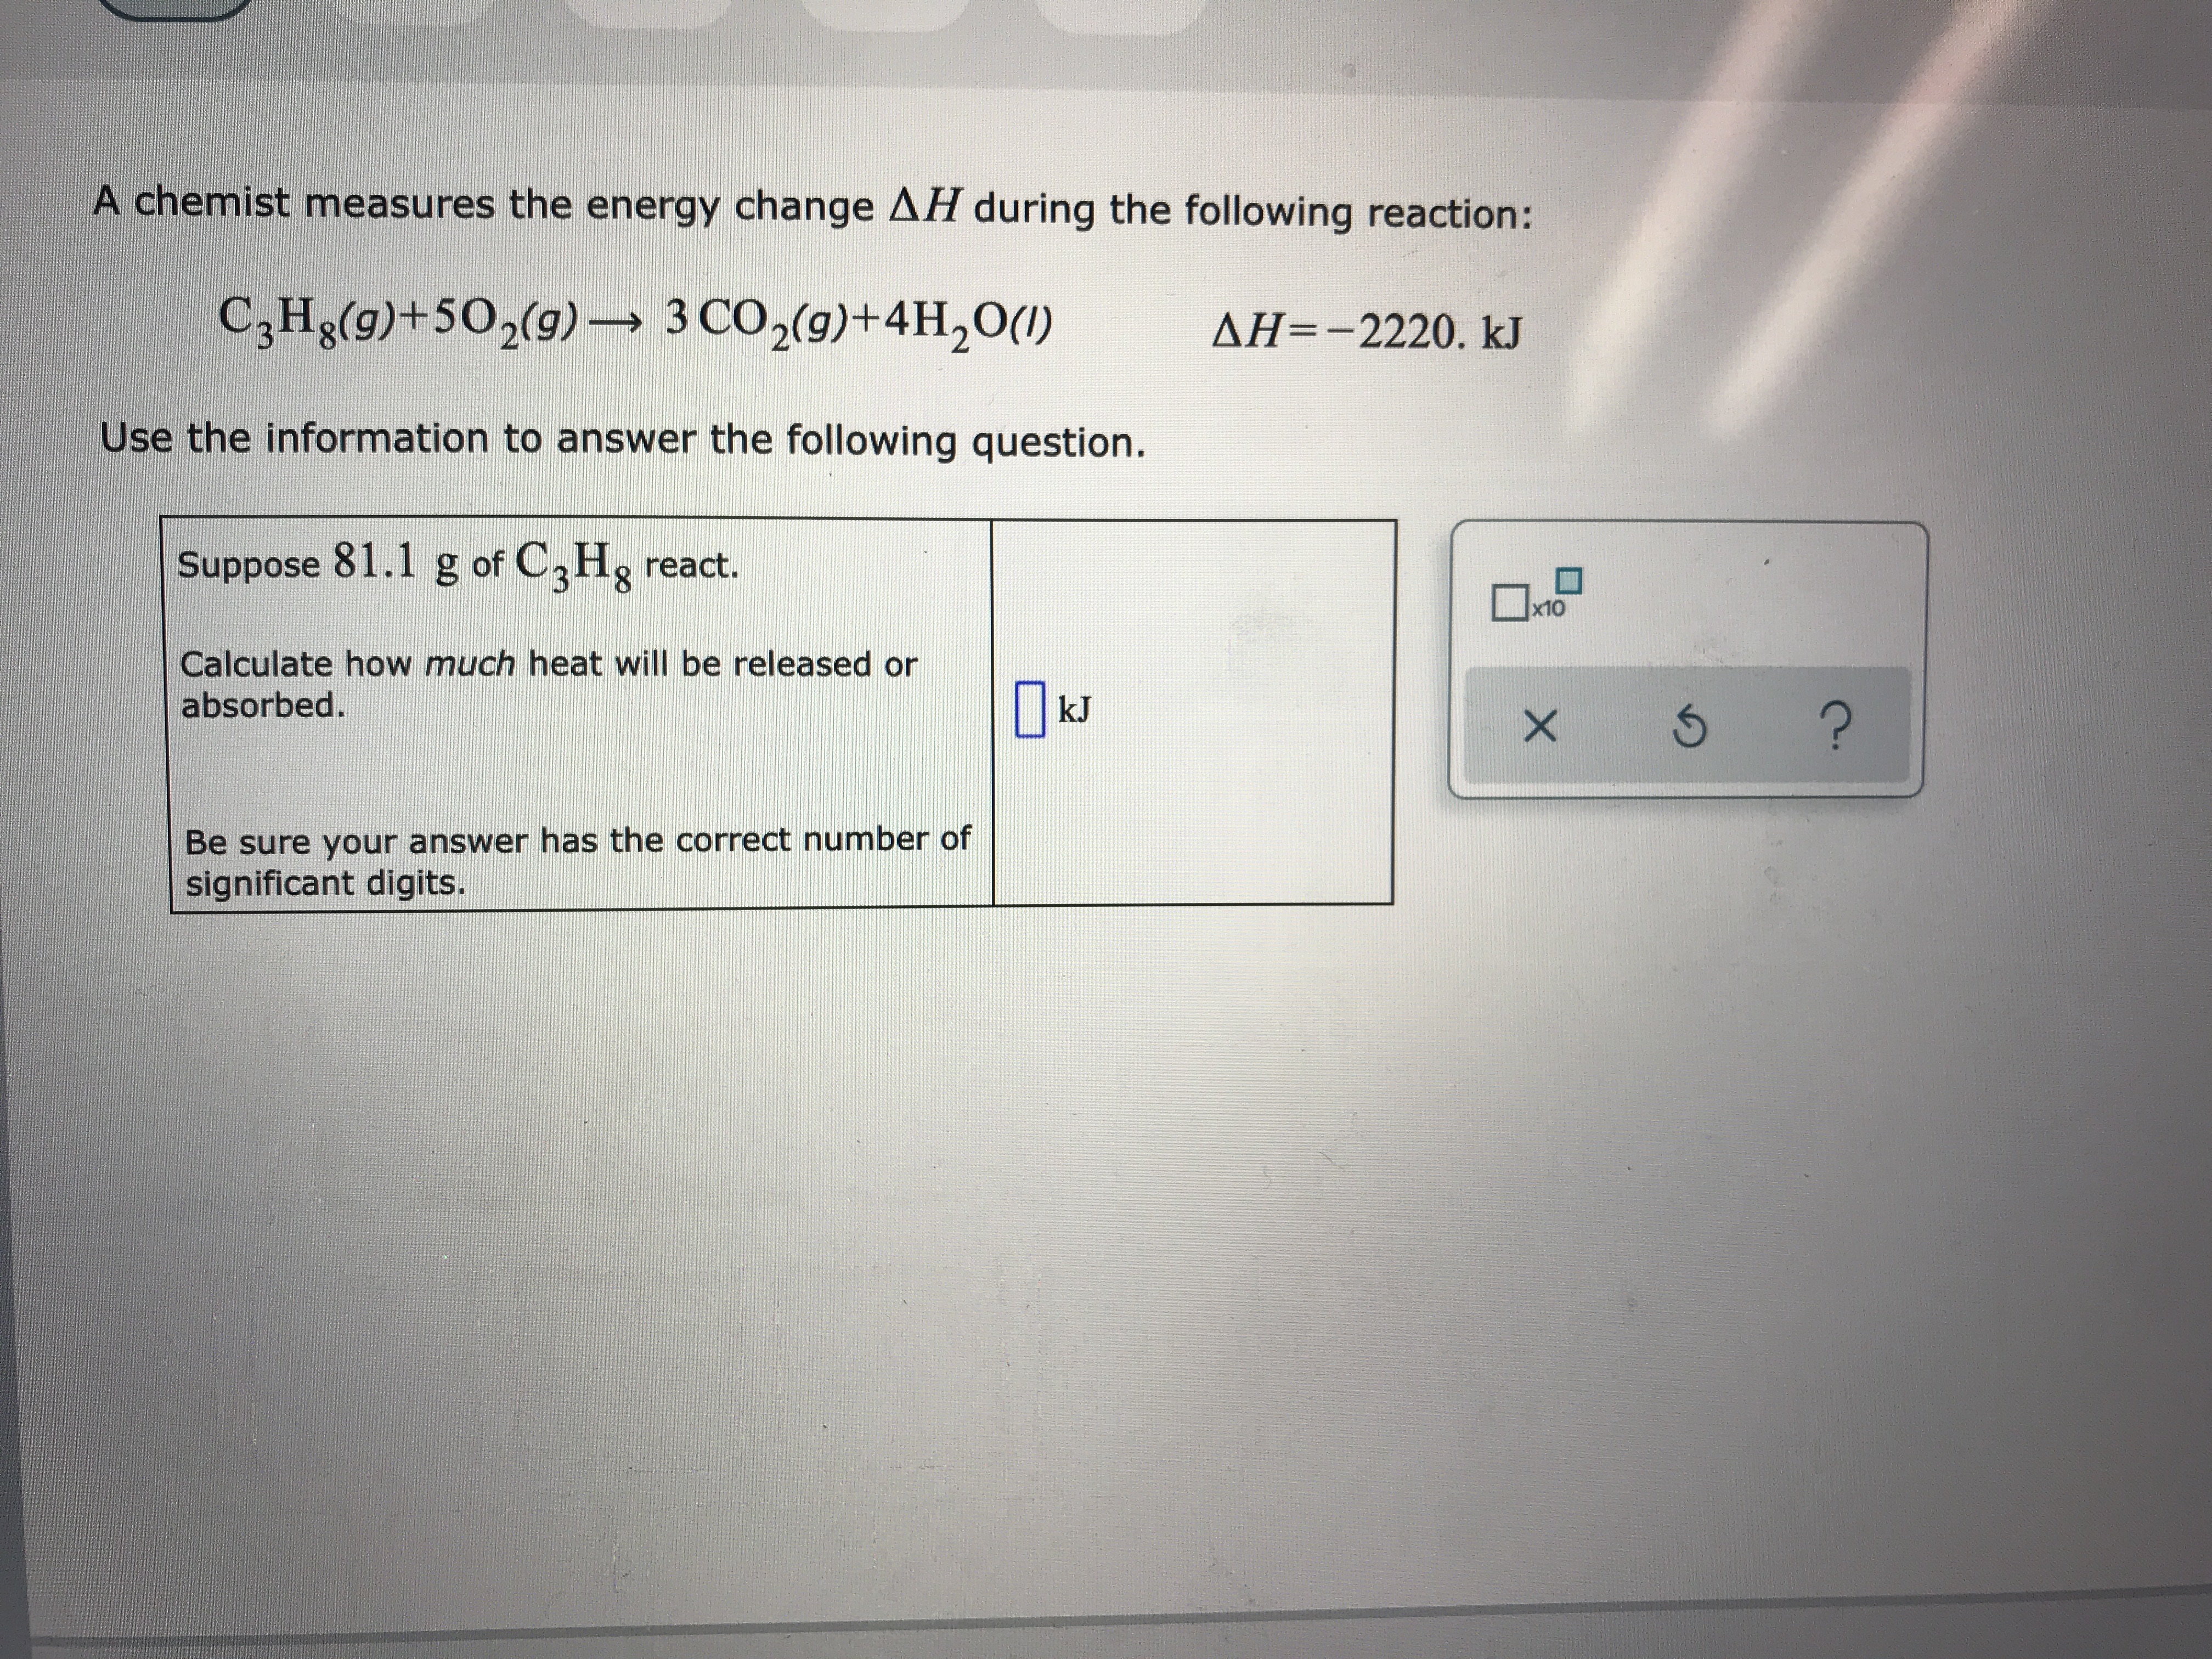 A chemist measures the energy change AH during the following reaction: C3Hg(g)+502(g) 3 CO2(g)+4H20() AH=-2220. kJ Use the information to answer the following question. Suppose 81.1 g of C2Hg react. x10 Calculate how much heat will be released absorbed. kJ ? Be sure your answer has the correct number of significant digits. X